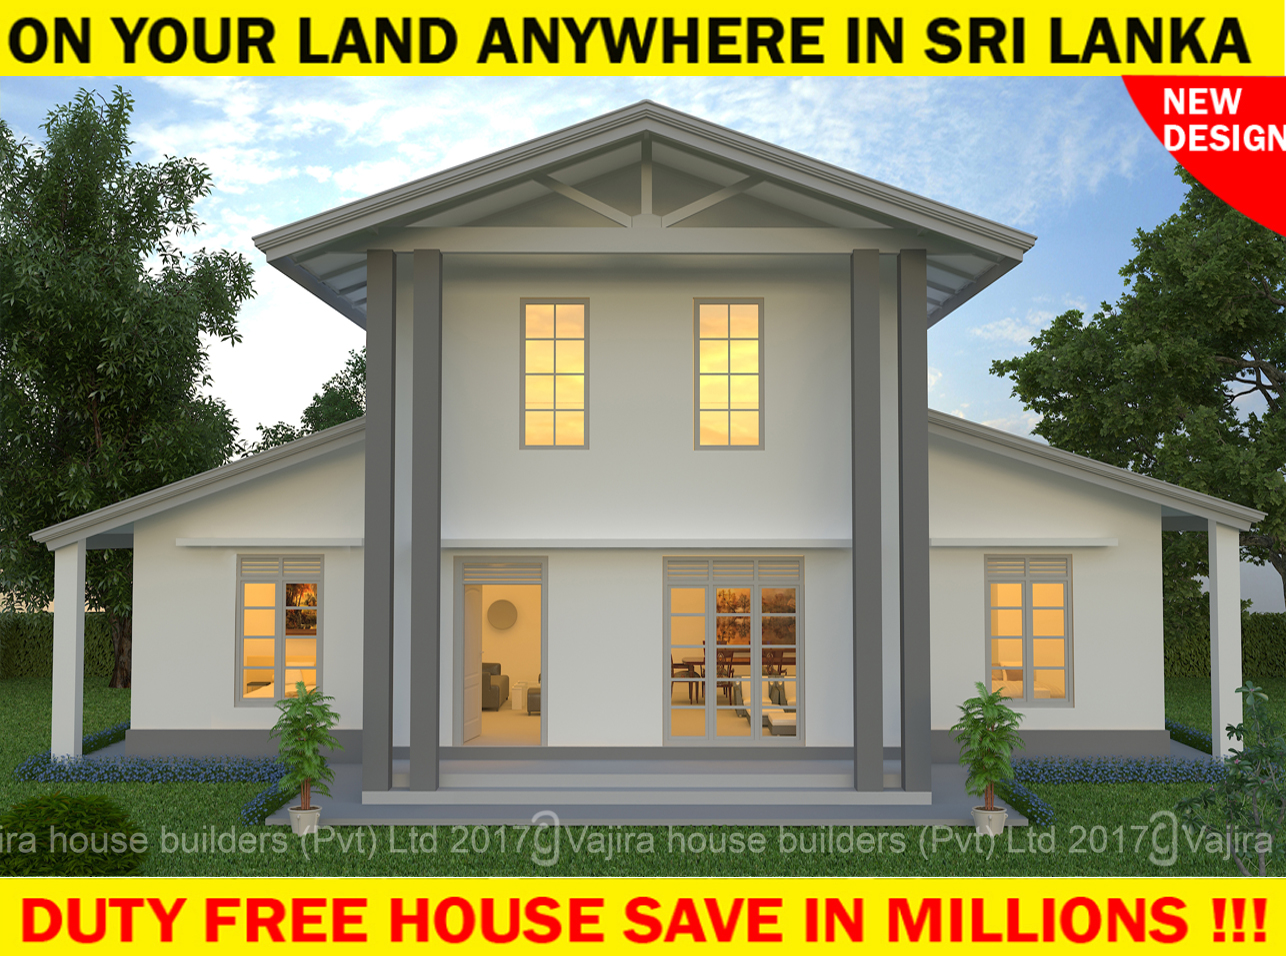 Ss 141 vajira house builders private limited best for Architecture sri lanka home designs